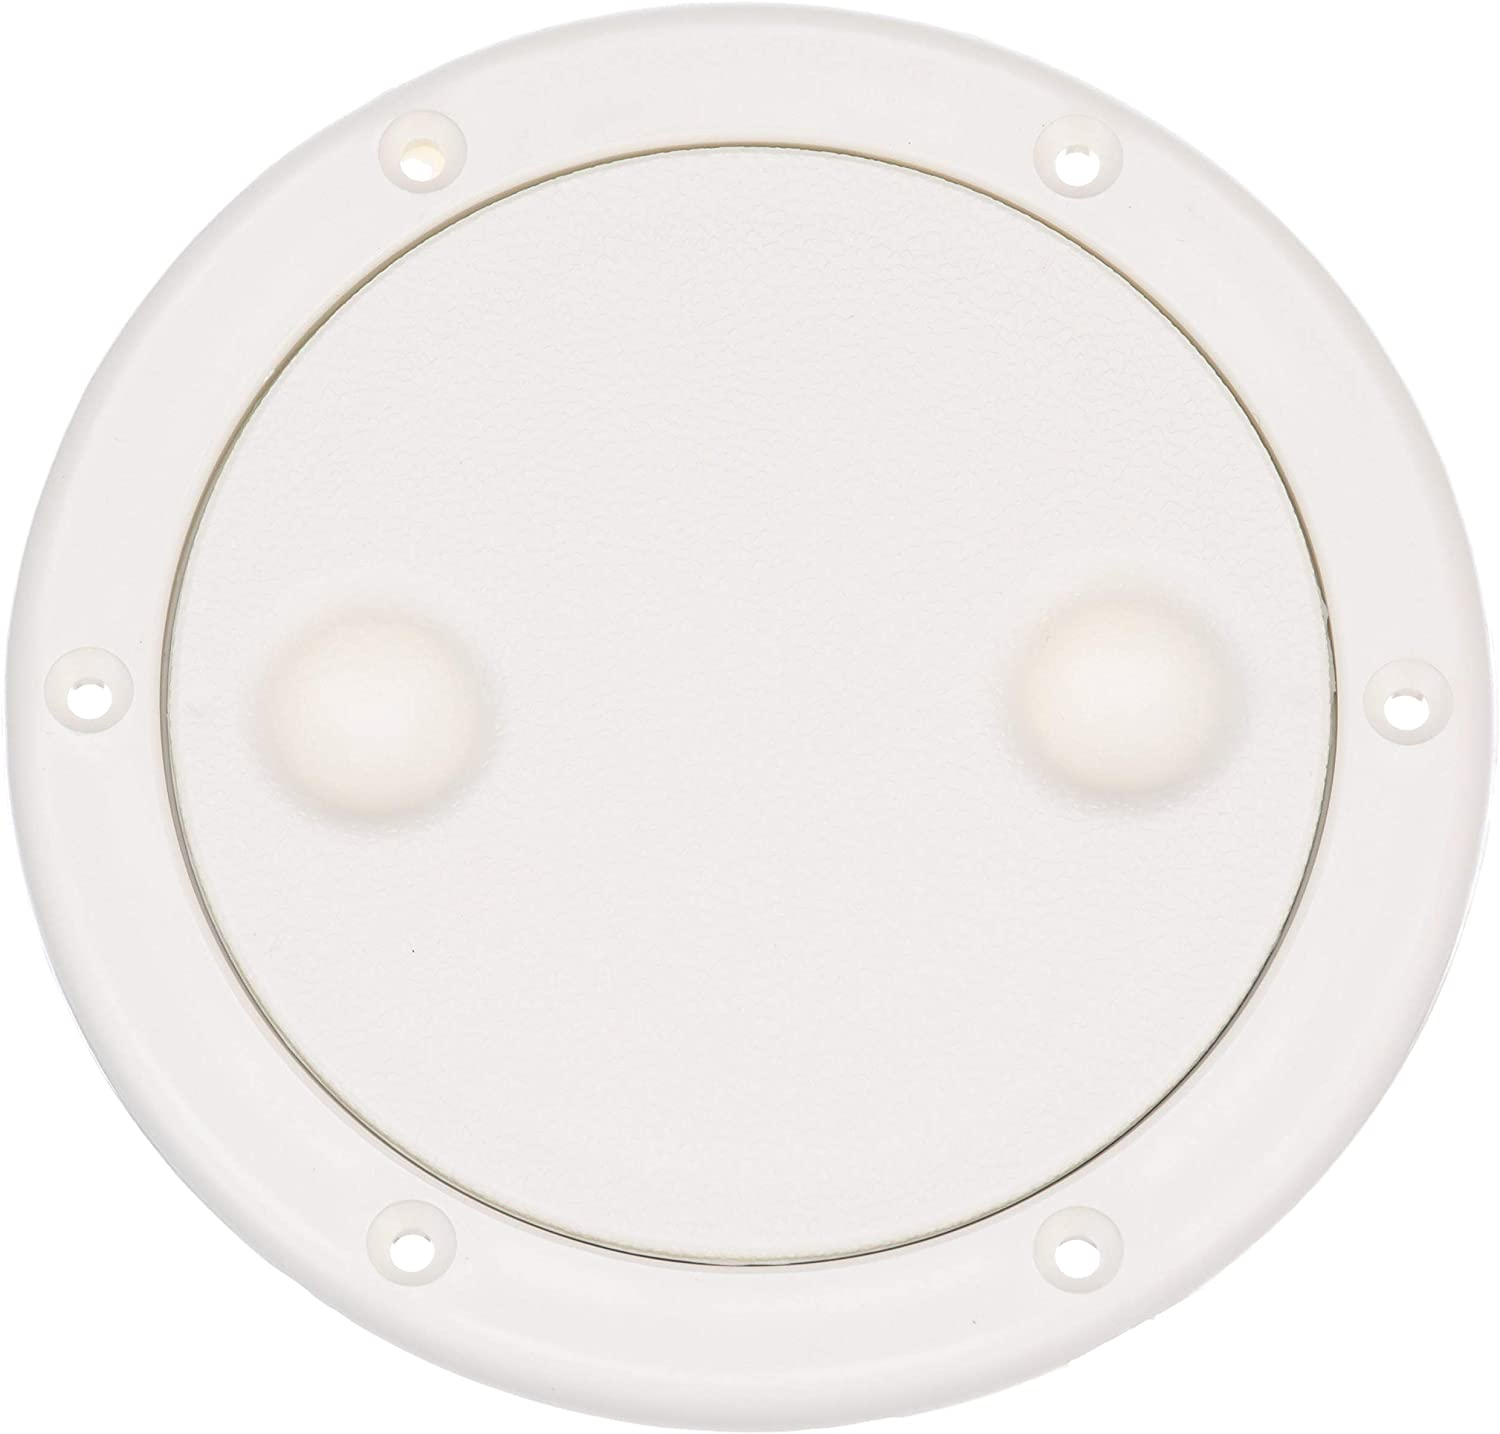 Sea Choice Twist Lock Deckplate 39351